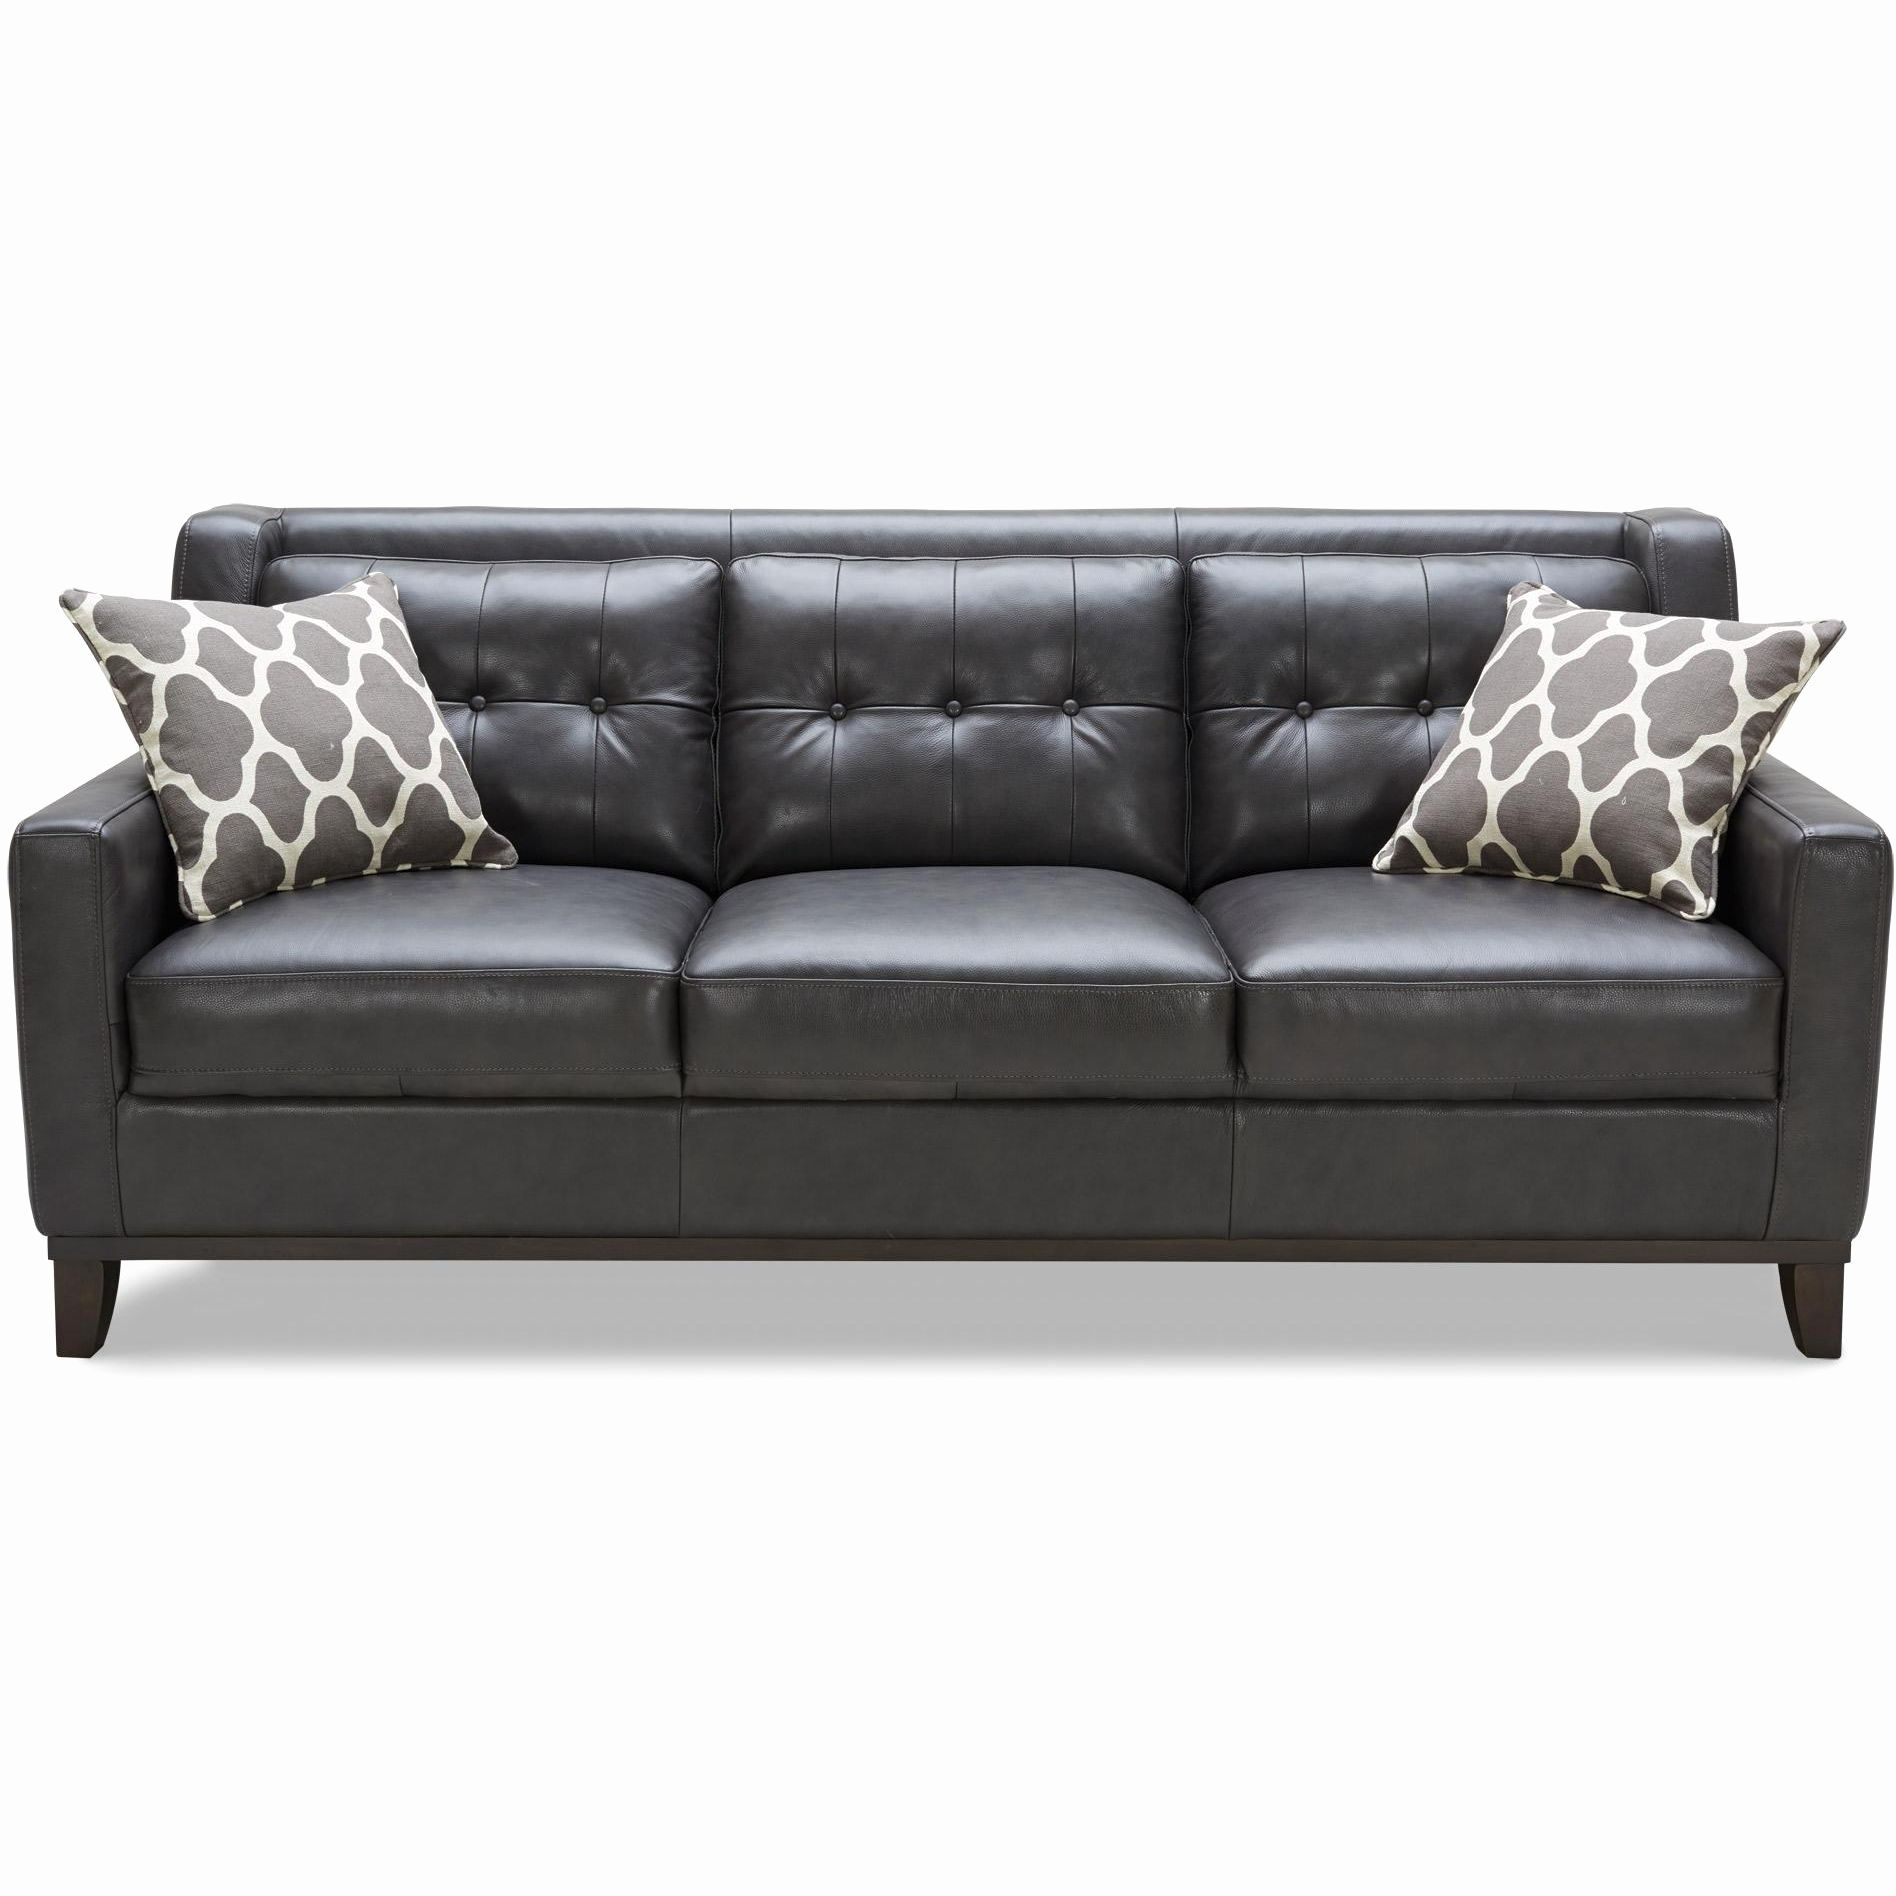 Awesome White Contemporary Leather Sofa Shot A Leather Sofa For Your inside Denali Light Grey 6 Piece Reclining Sectionals With 2 Power Headrests (Image 5 of 30)